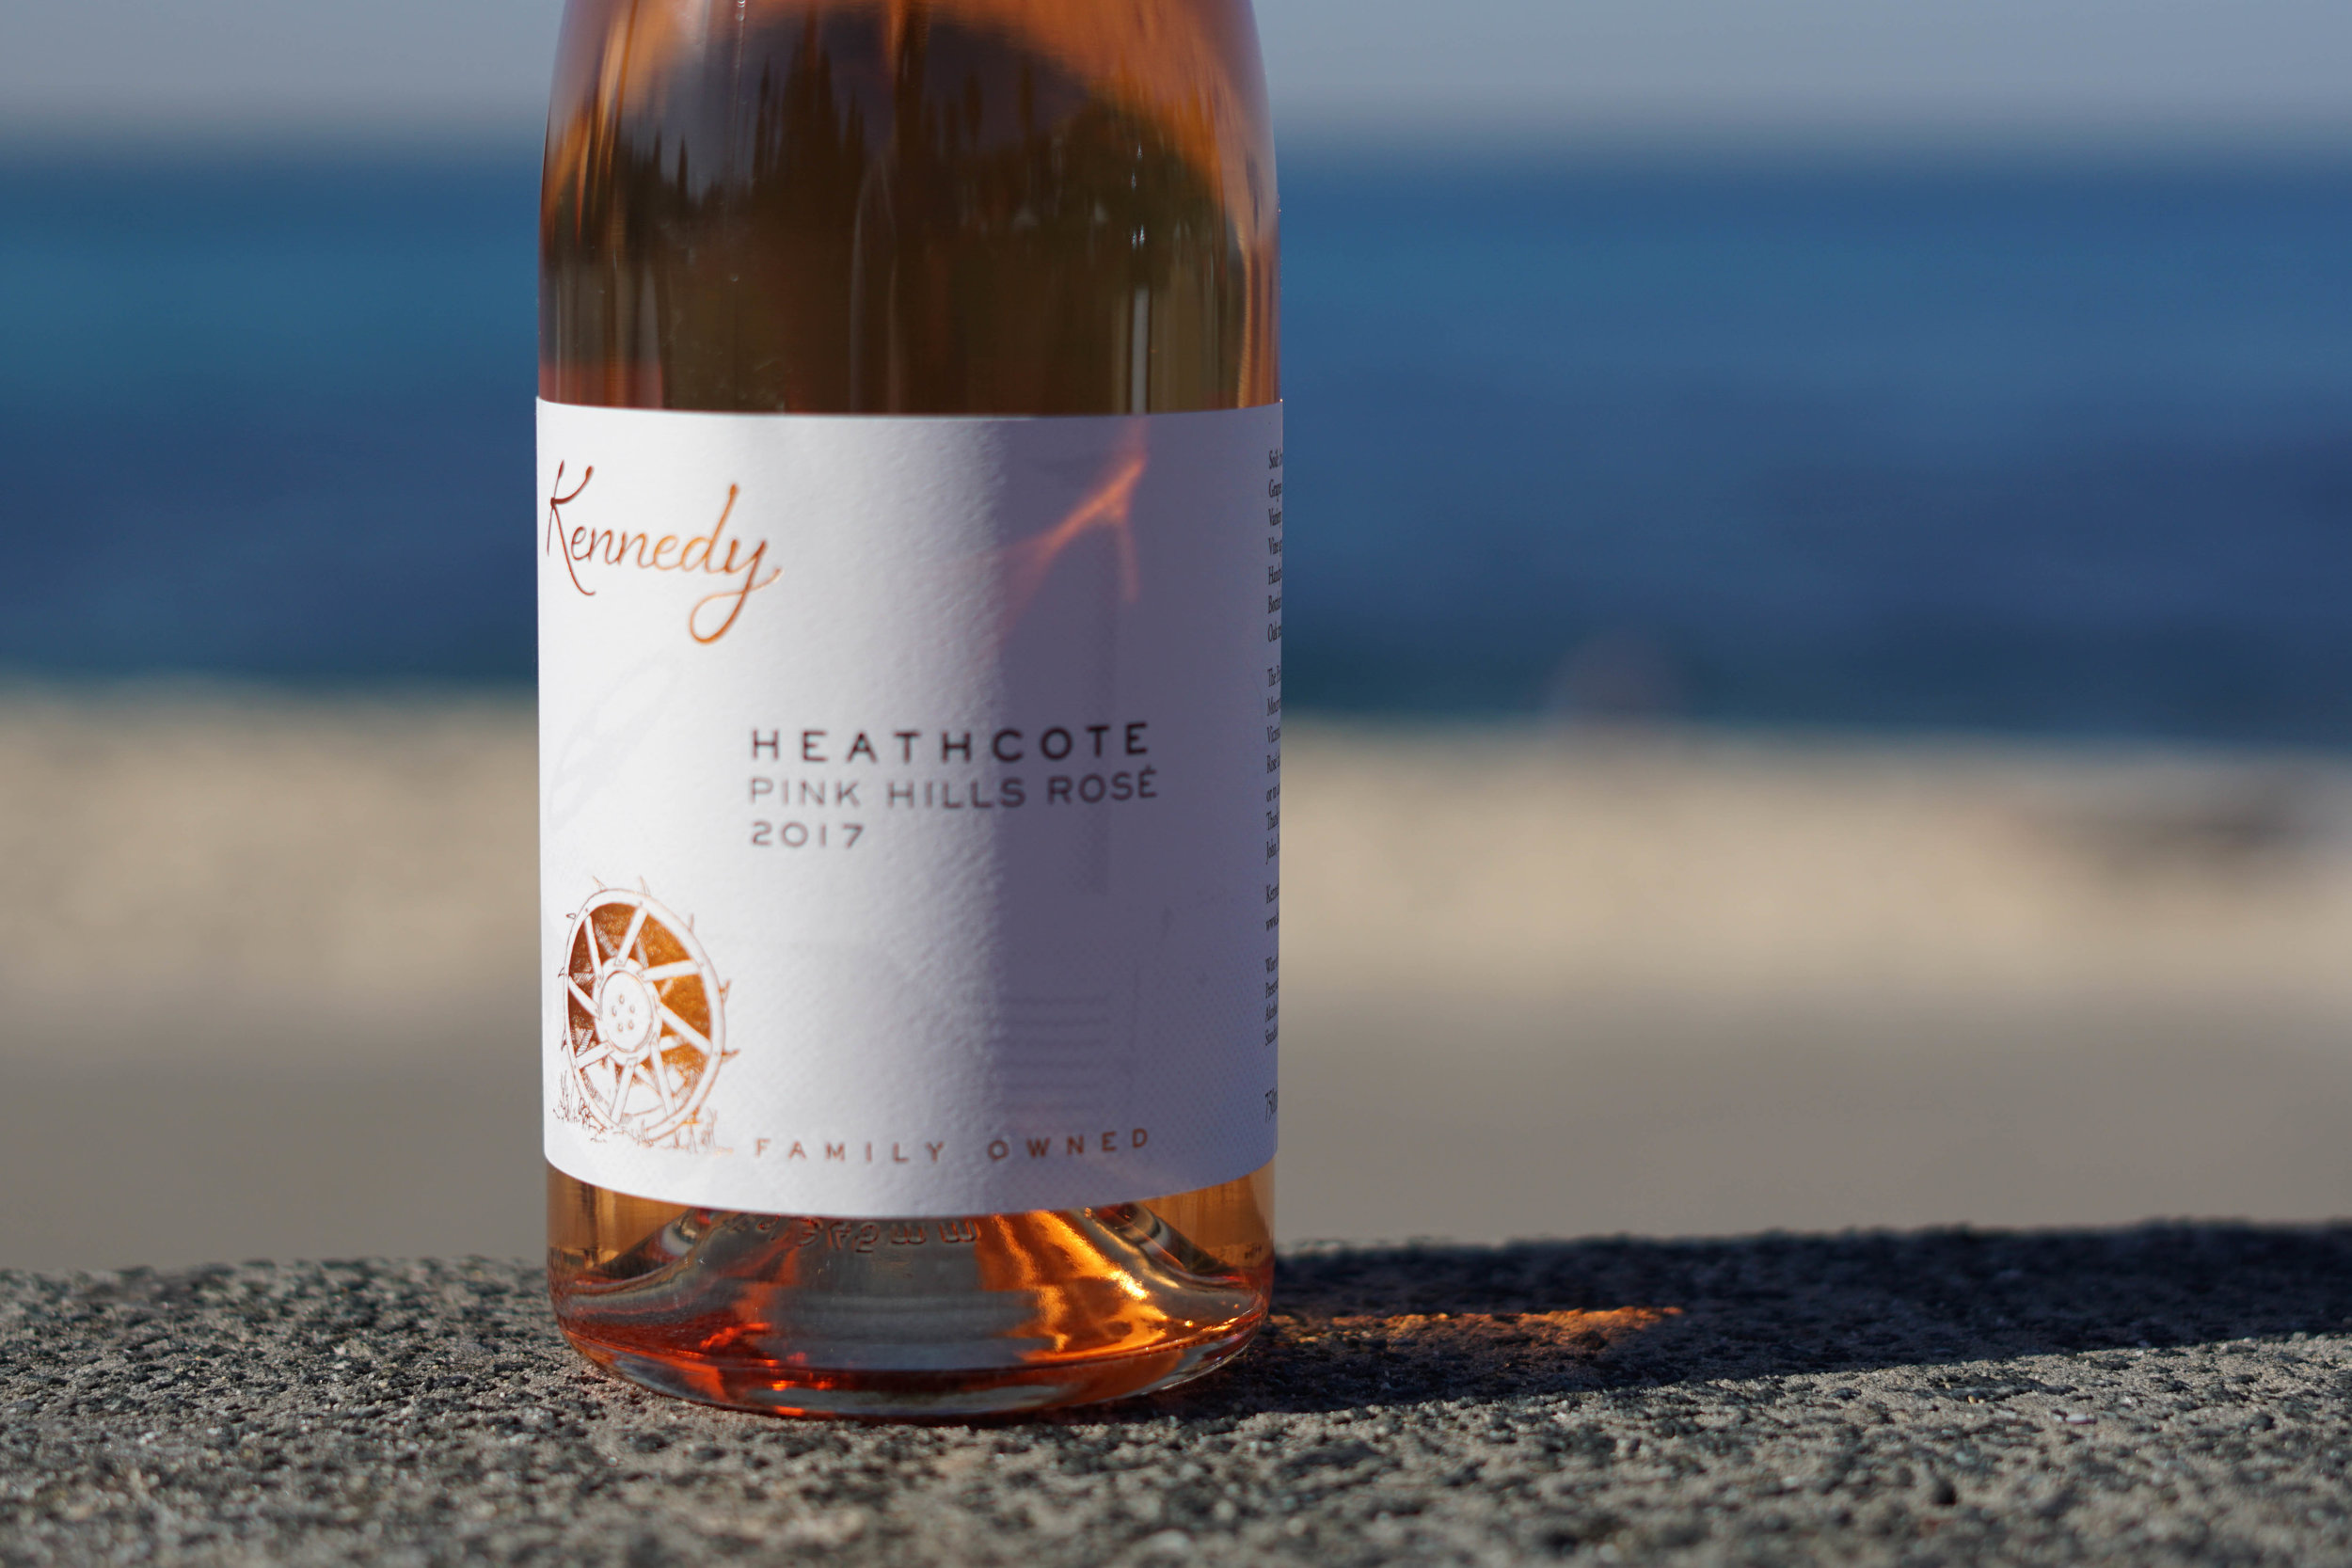 2017 Kennedy 'Pink Hills' Rosé   100% Mourvedre 2.5T/acre  Handpicked at 240m elevation on Cambrian soils (Iron rich with jasper, chert, seafloor basalt/greenstone). Mourvedre is wholebunch pressed direct to old French barrique to complete wild primary fermentation for a little over 14 days with occasional battonage towards the end of ferment.  Post wild primary fermentation, the wine is lightly sulphured to prevent malolactic fermentation occuring. The resulting wine is round and textured thanks to barrel fermentation but retains a pristine line of acidity. The wine remains on lees for 7 months in old french barriques before being sent to bottle without correction.  Bottled unfined and unfiltered with 55mg/l SO2 added.